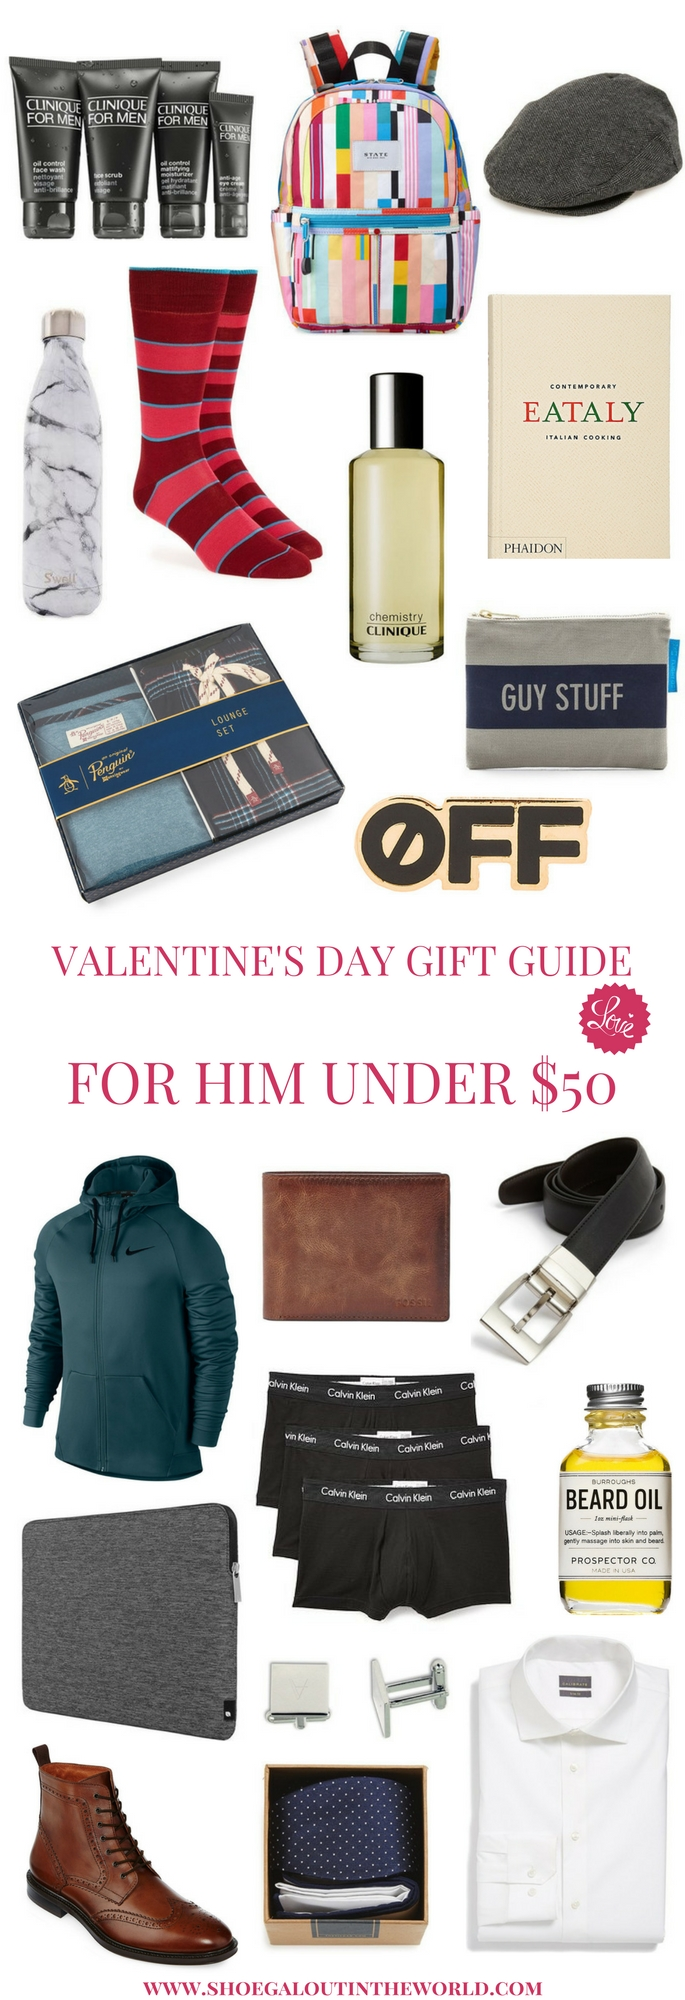 DAY GIFT GUIDE FOR HER & HIM UNDER $50